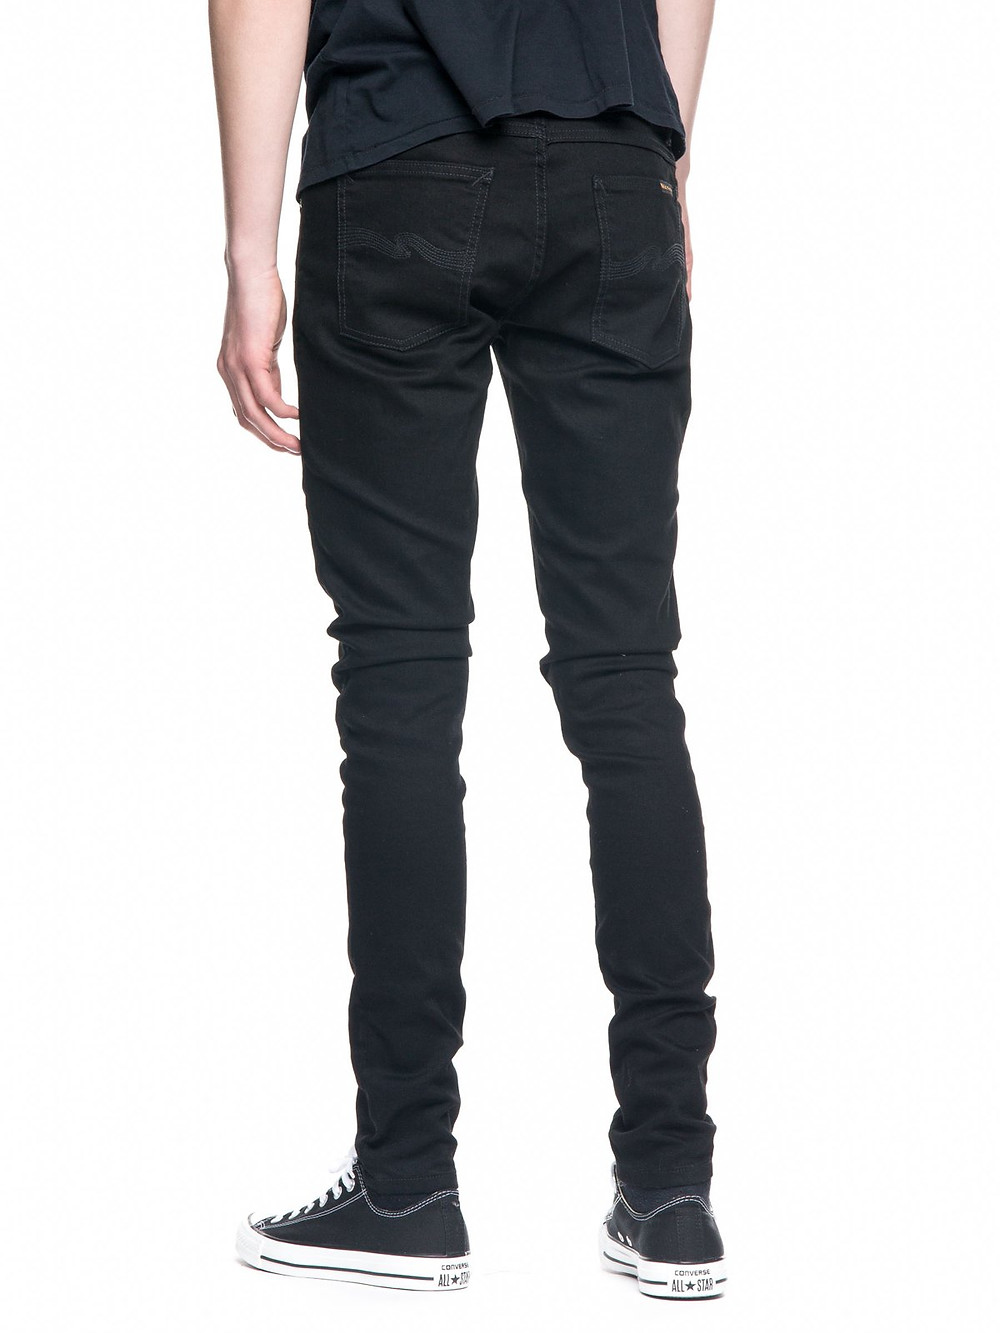 Tight Terry Deep Black タイトテリー ディープブラック nudiejeans